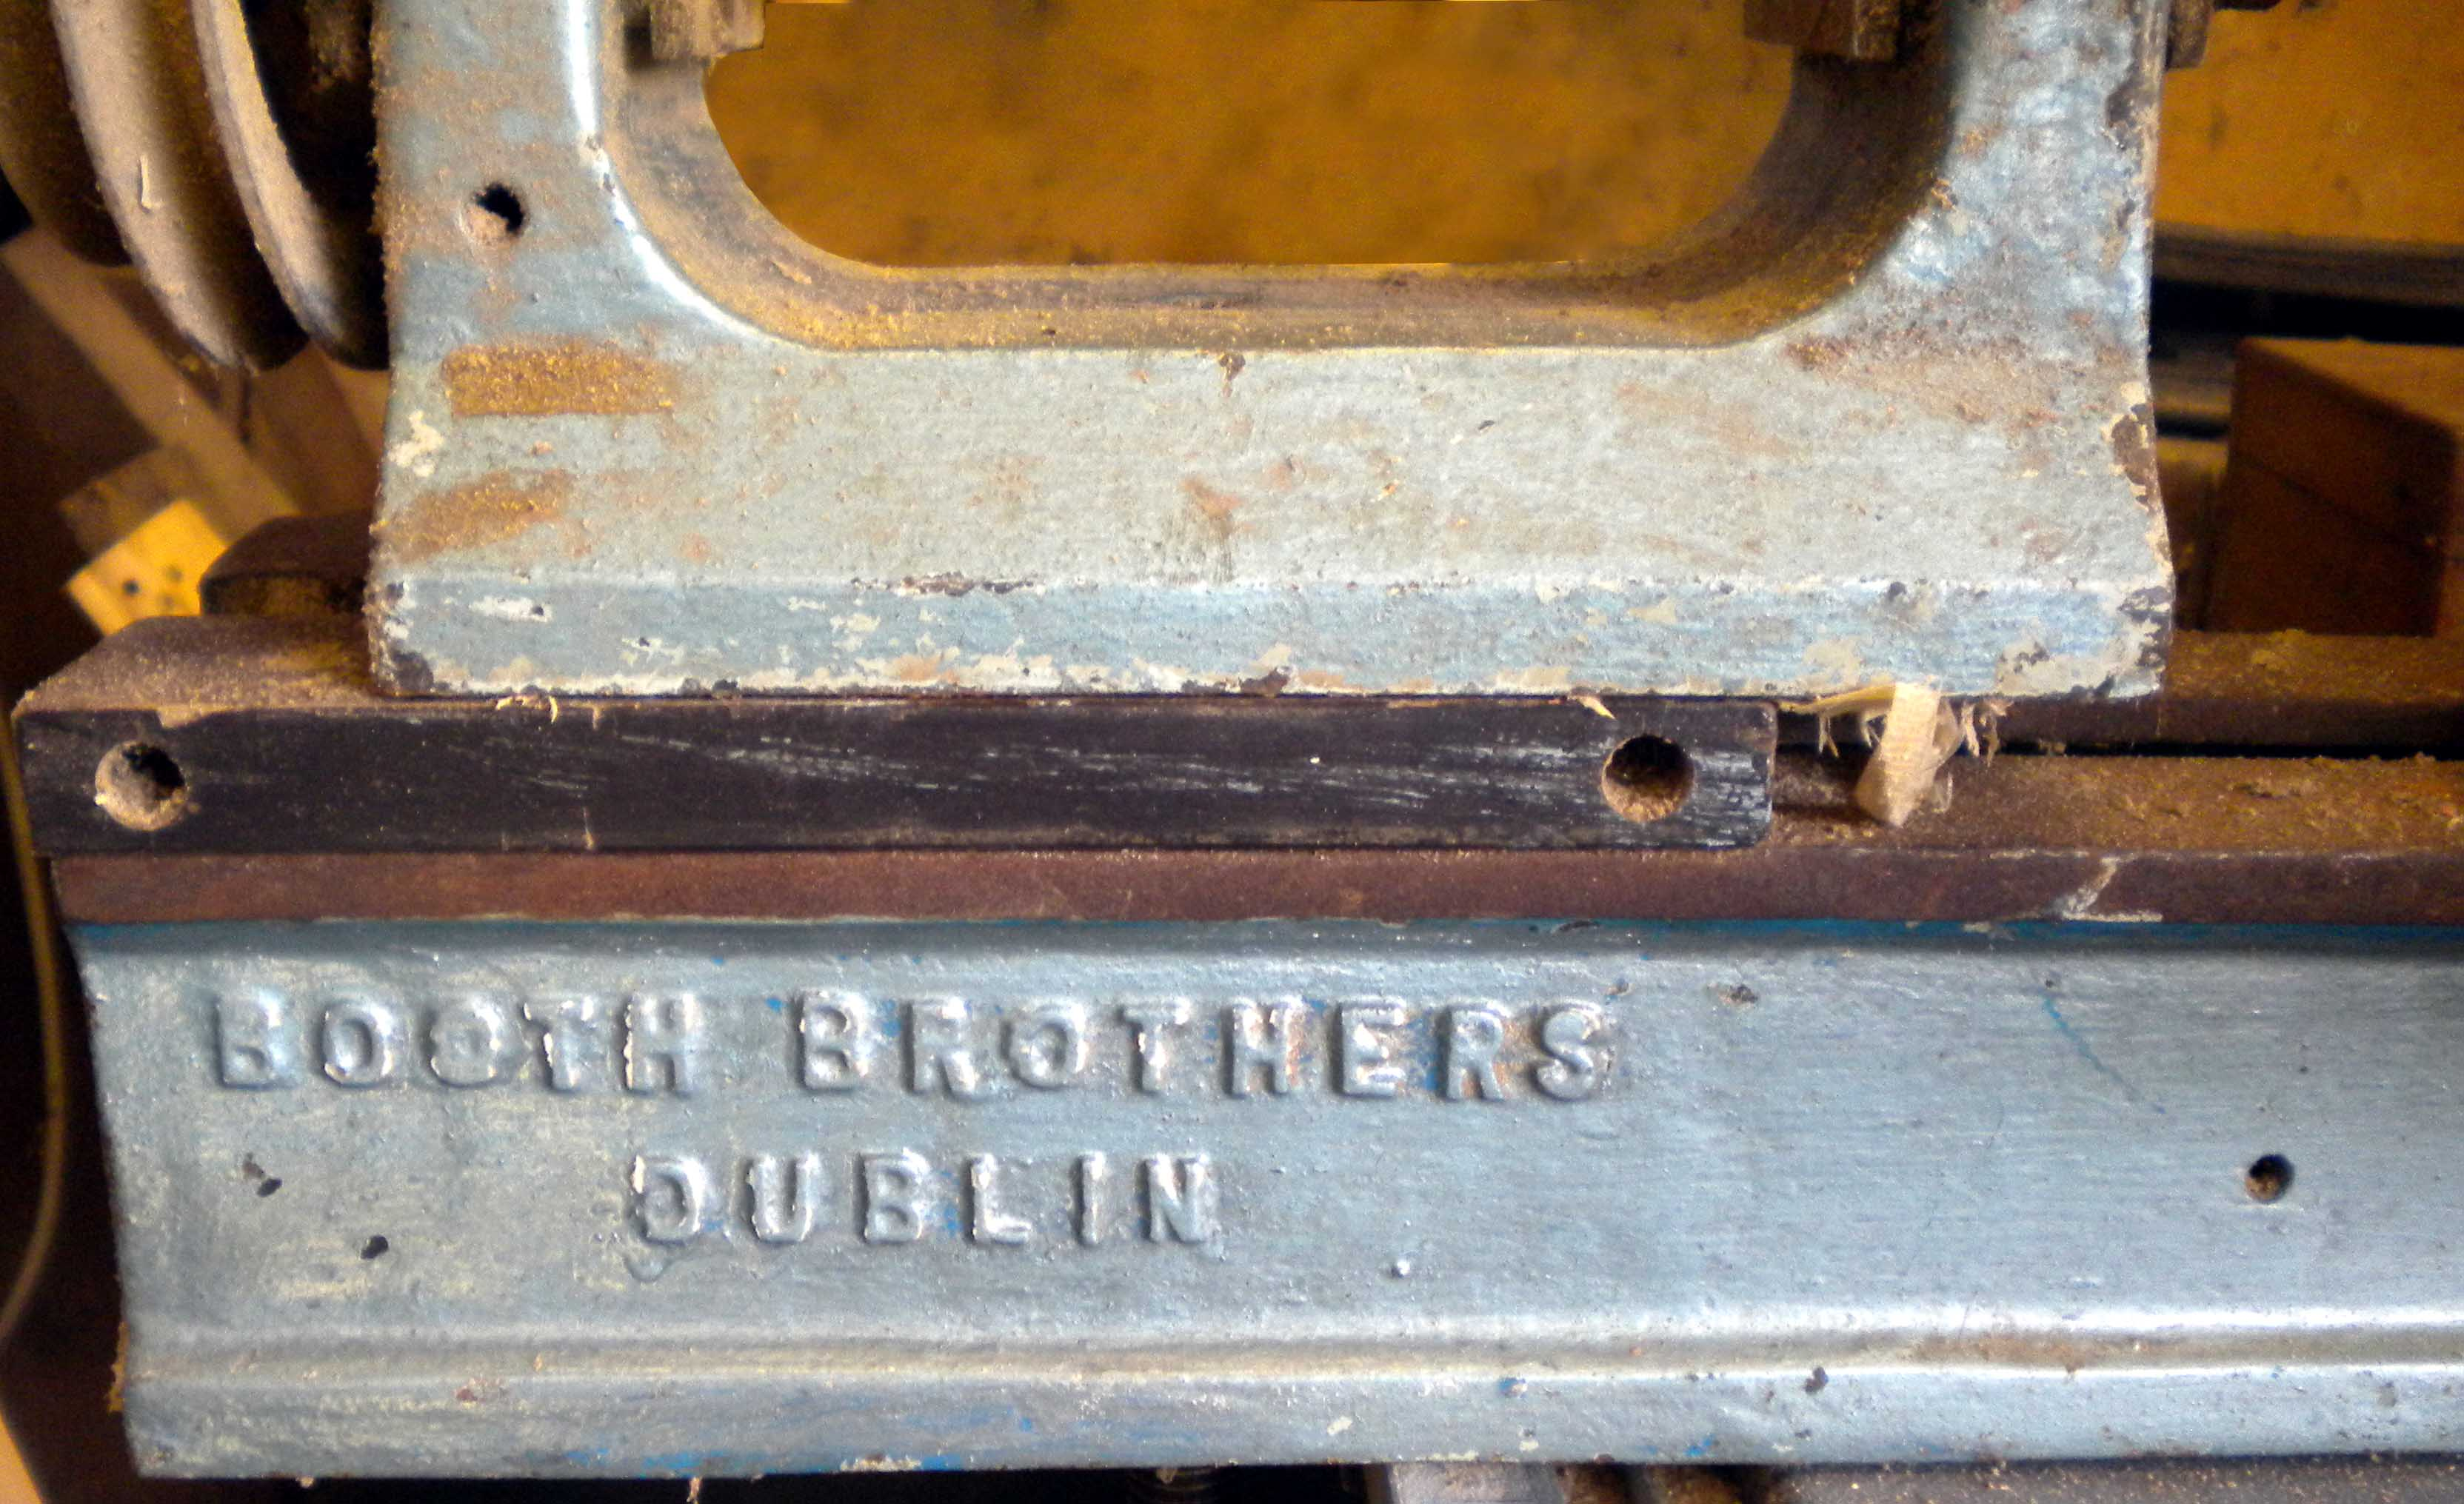 Booth Brothers Lathes